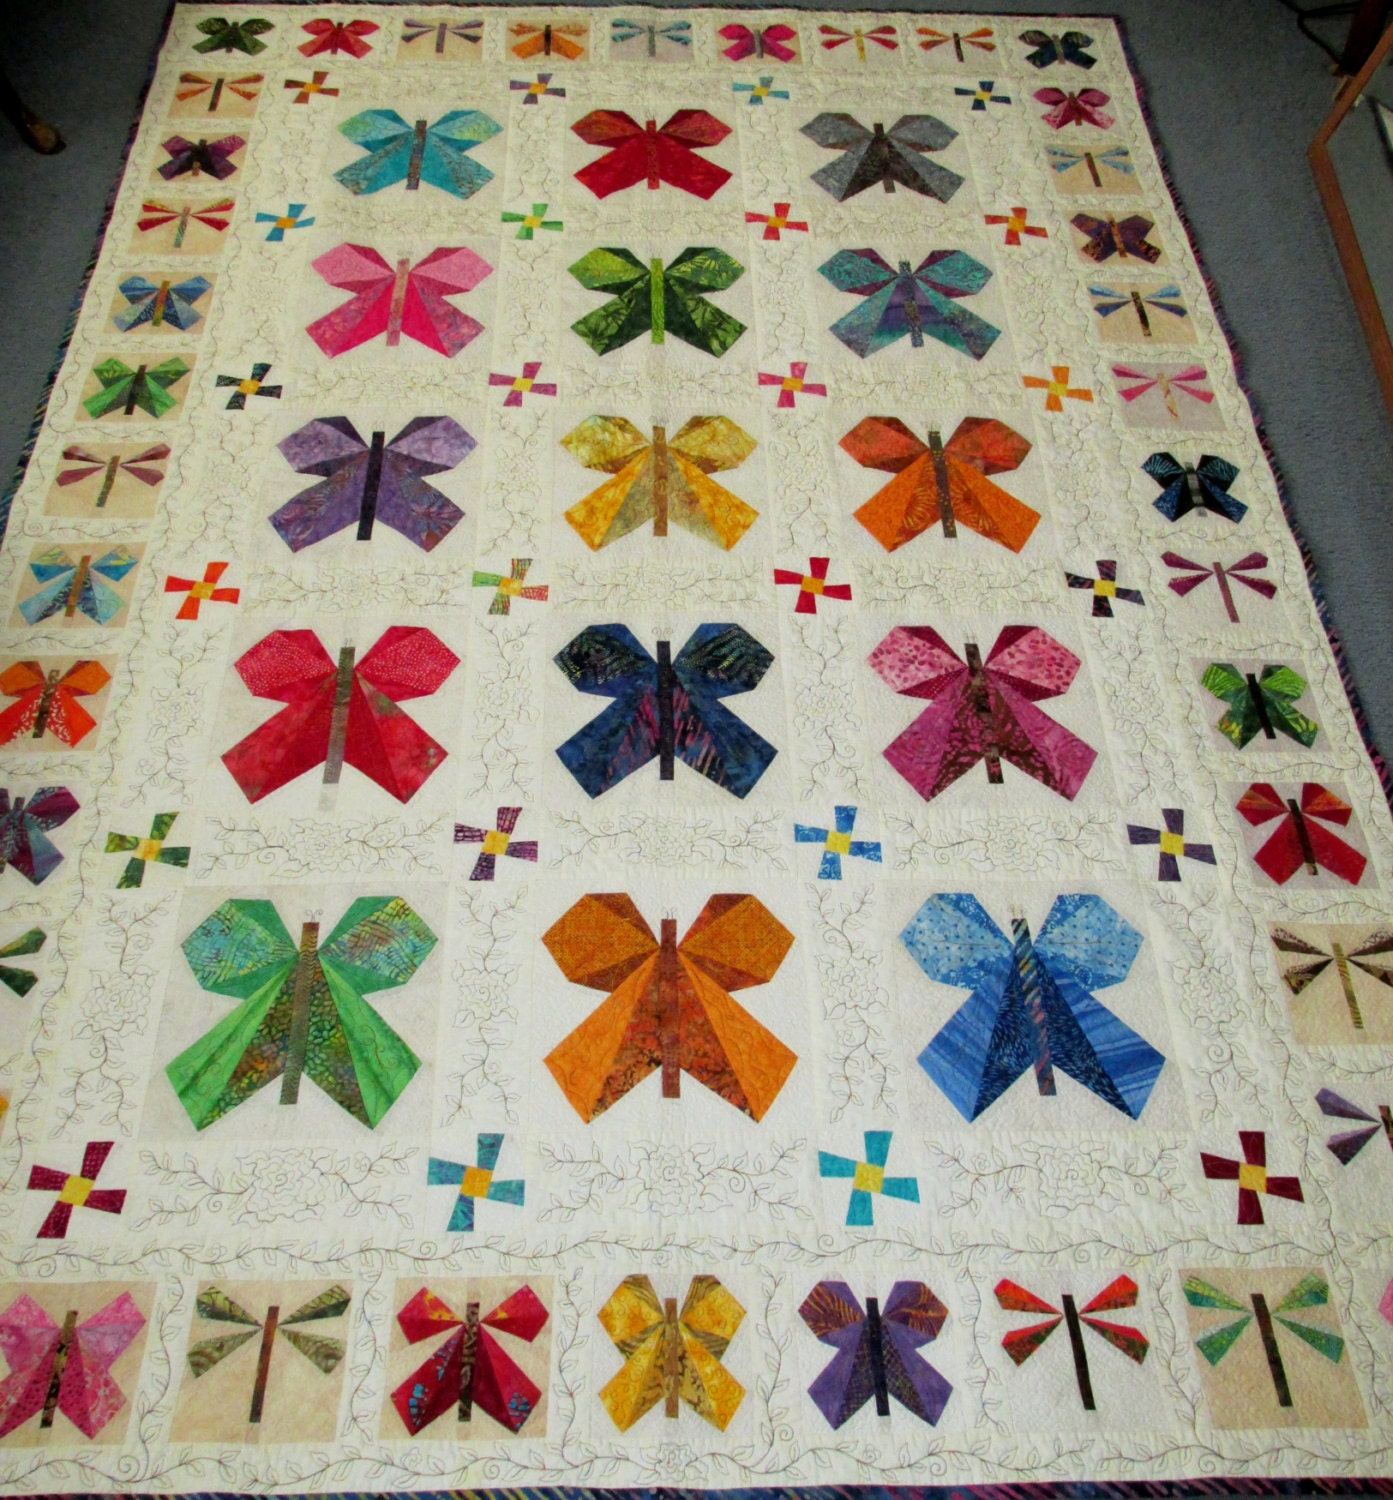 Batik Butterfly Garden Quilt With Dragonflies And Flowers In